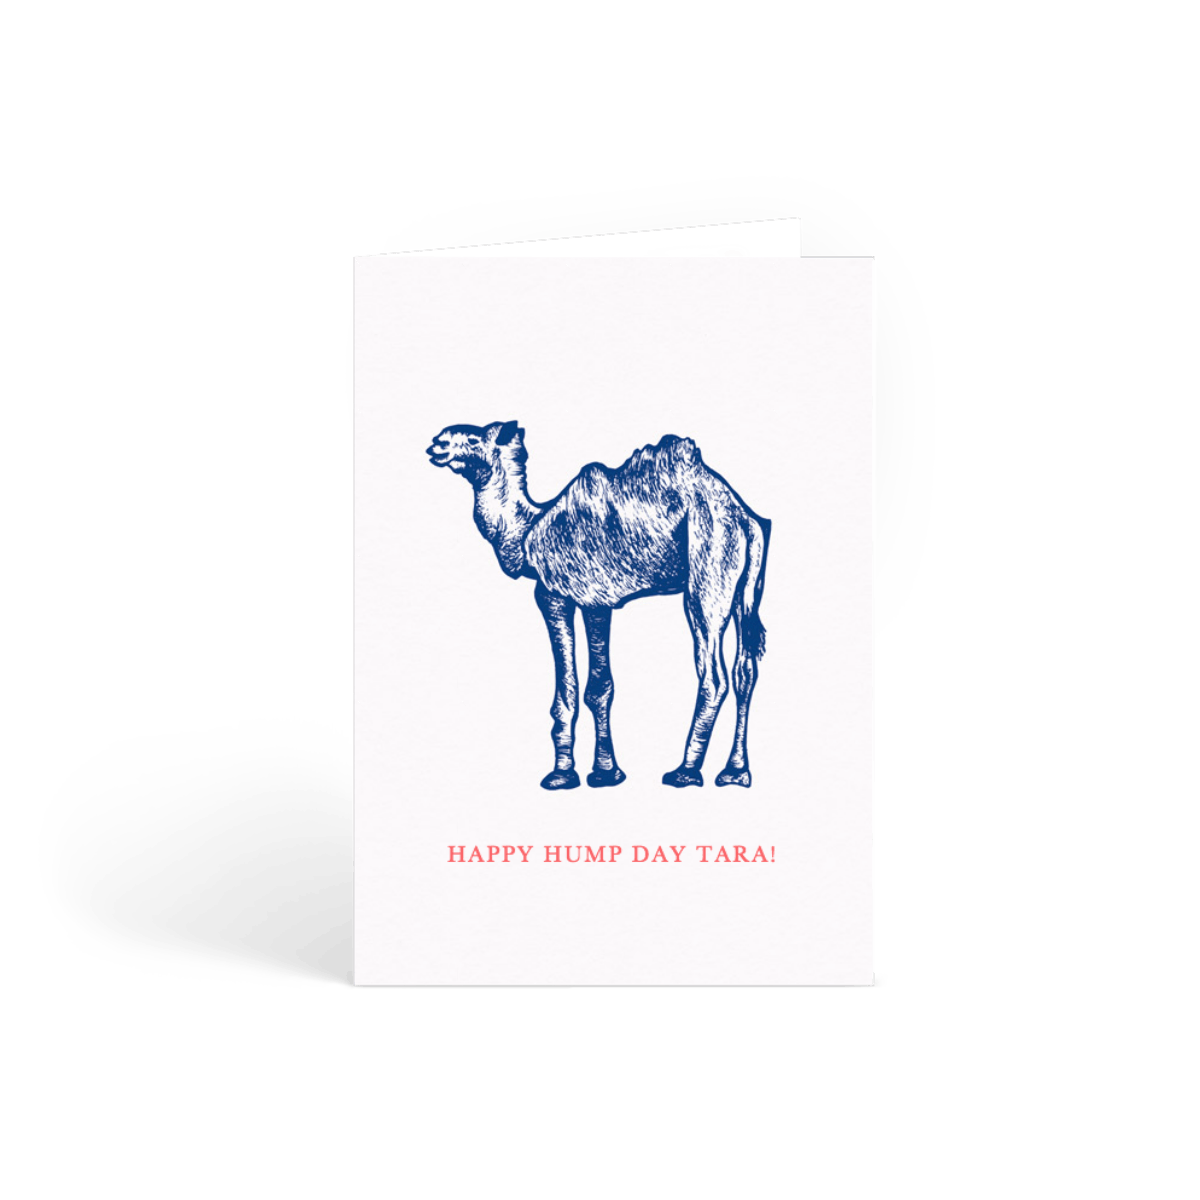 Https%3a%2f%2fwww.papier.com%2fproduct image%2f13926%2f2%2fhump day camel 3574 front 1479895641.png?ixlib=rb 1.1